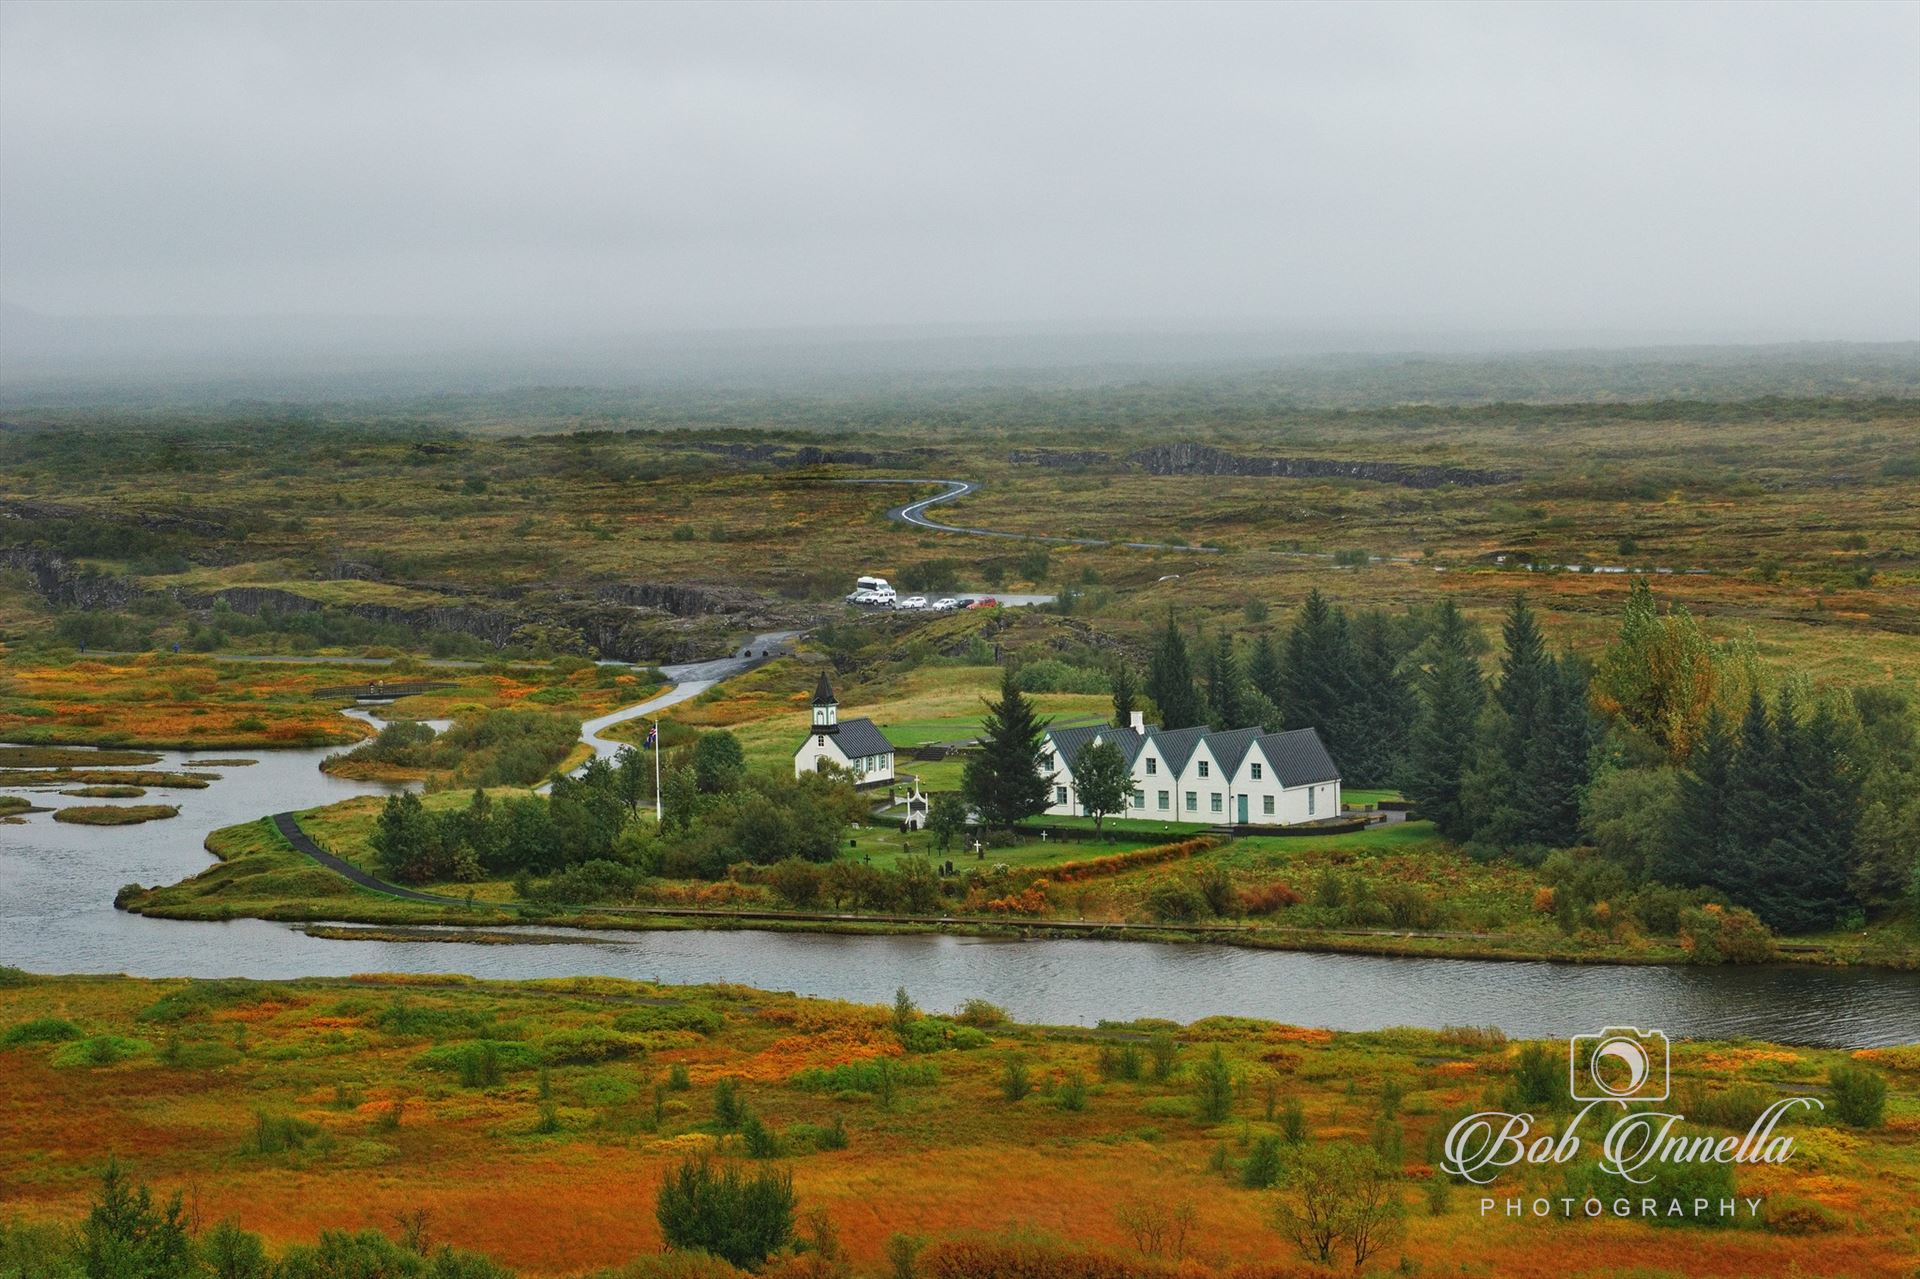 Church in Iceland - Somewhere in Iceland by Buckmaster